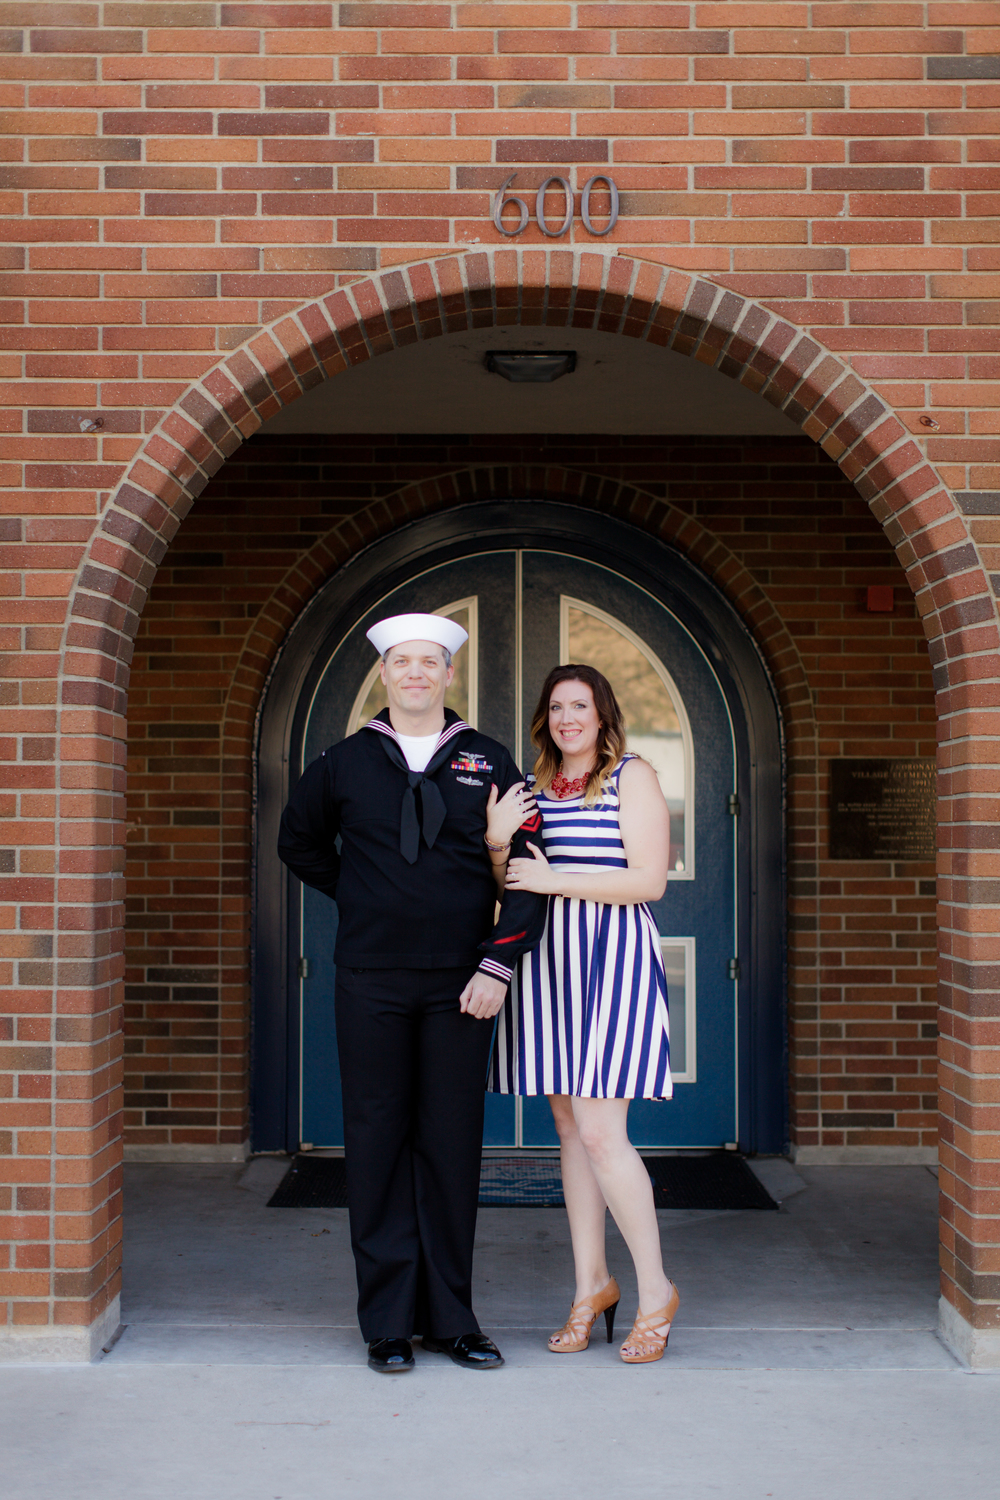 This summer, Dr. Amanda Cohen will marry her love, one of the Navy's finest, Phillip Safarik, at a beachside wedding on Coronado Island.